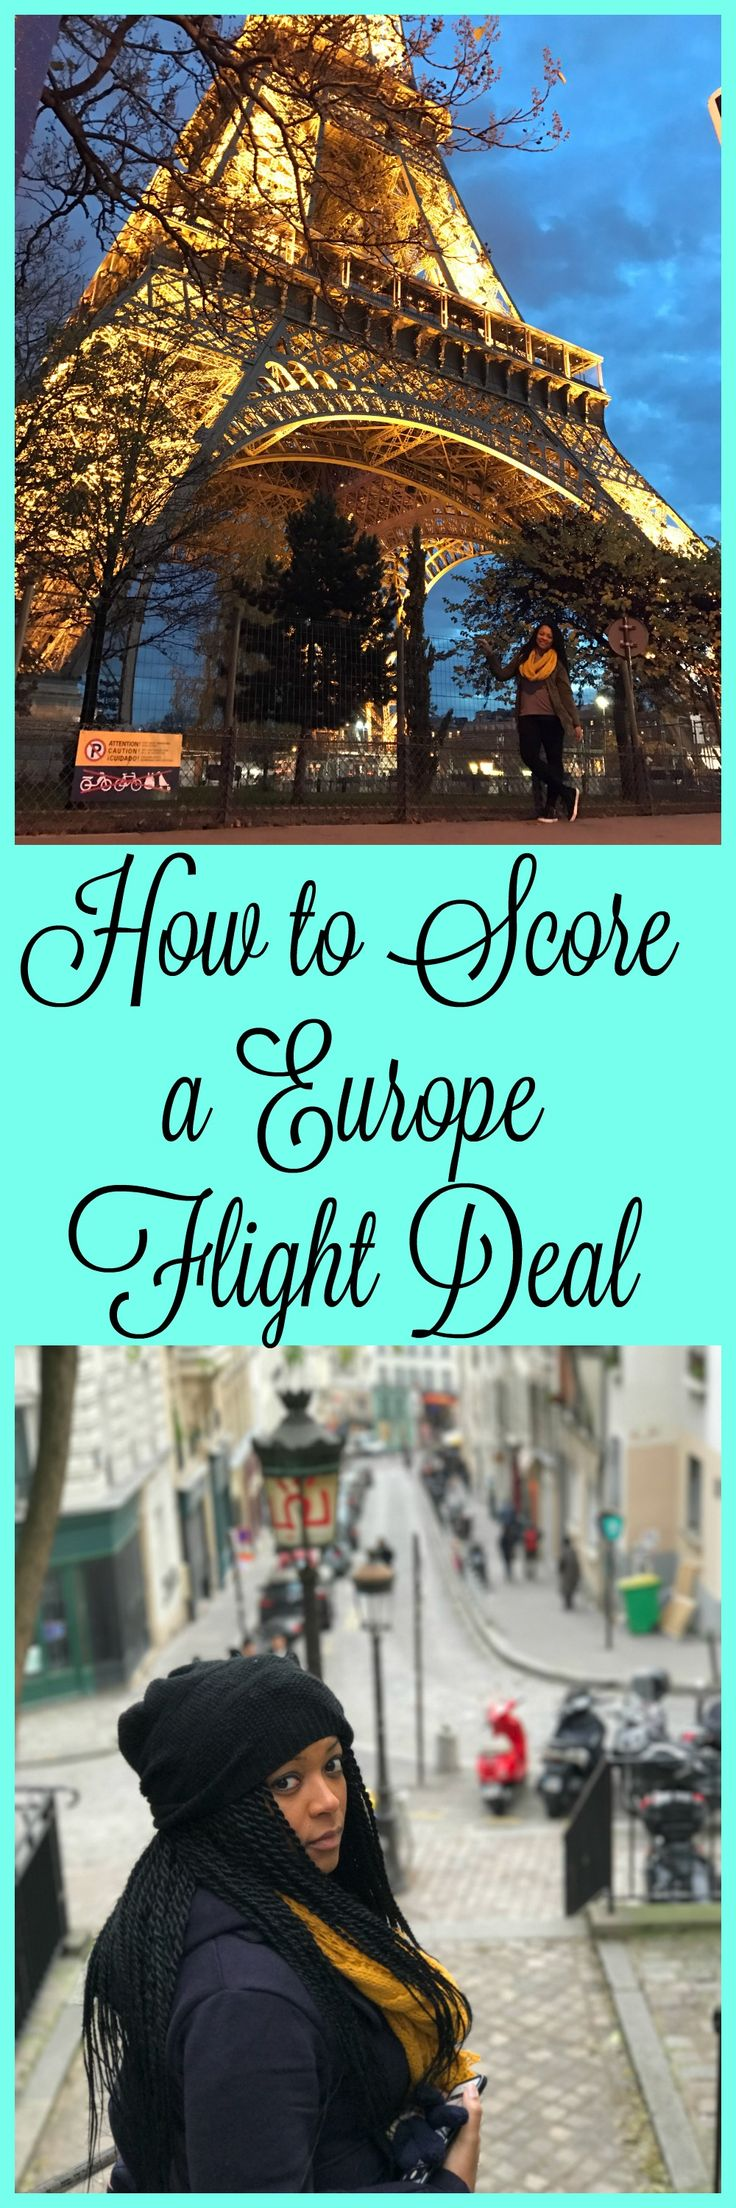 How to Score a Flight Deal to Europe. #Travel